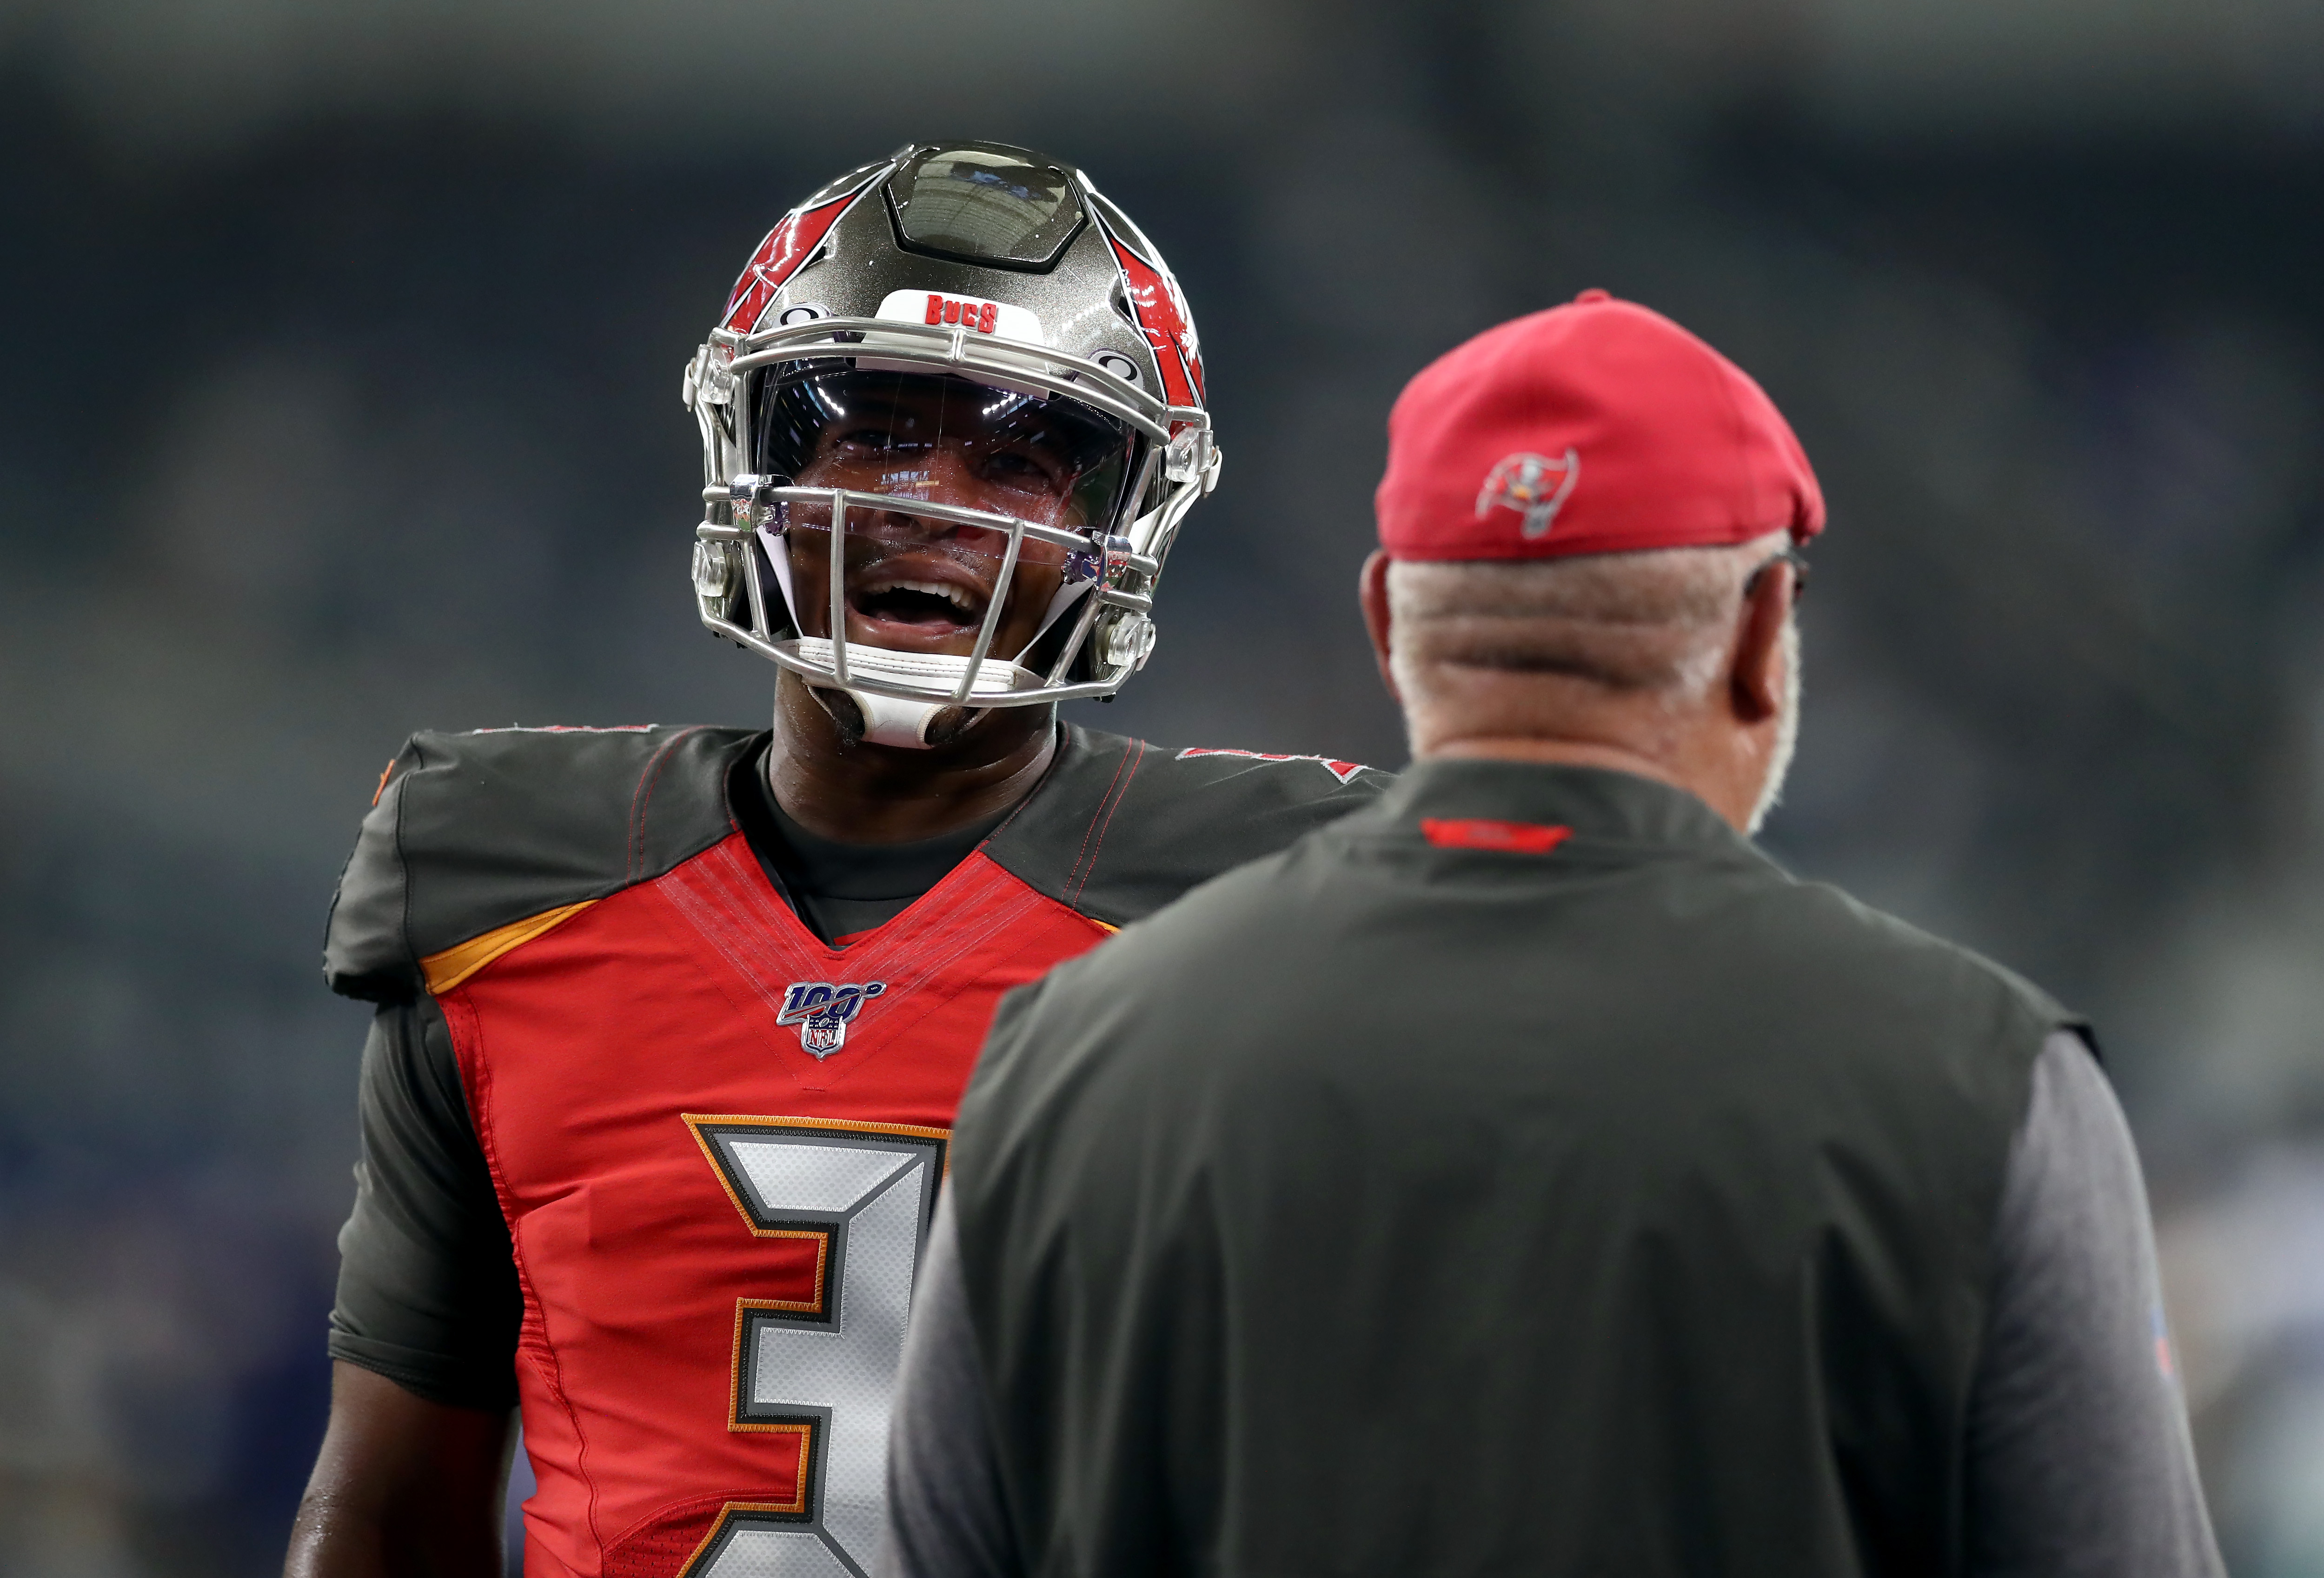 Tampa Bay Buccaneers quarterback Jameis Winston talks with head coach Bruce Arians before a NFL preseason game at AT&T Stadium on August 29, 2019 in Arlington, Texas.